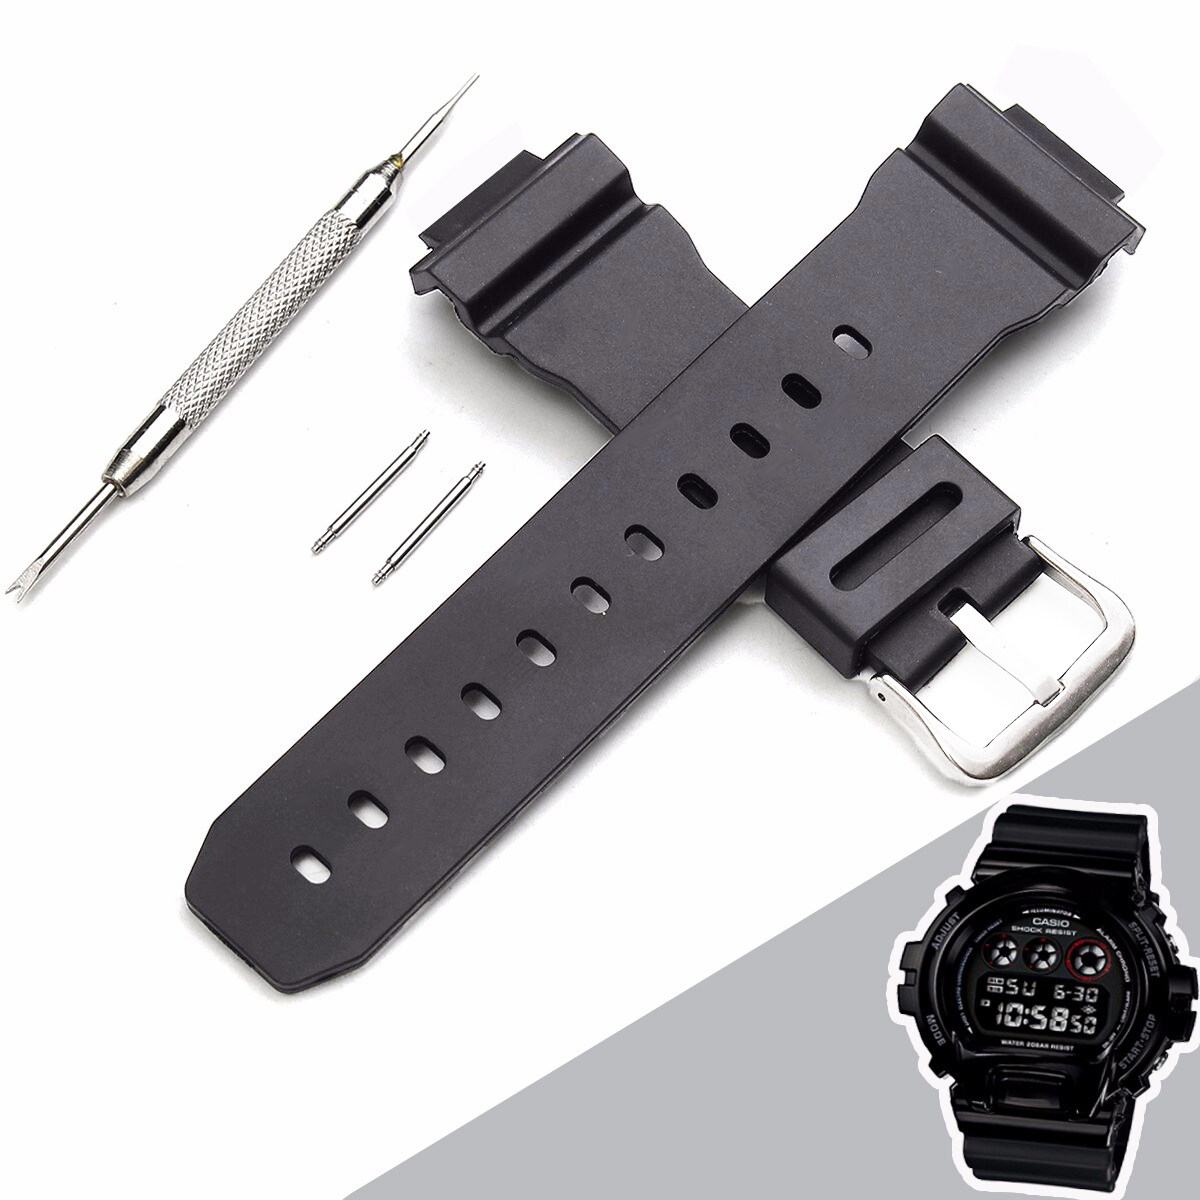 [BDAY SALE] Mens Watch Accessories J3 Replacement Watch Band Strap For G Shock D W-6900 W/ Batch&Needles Malaysia